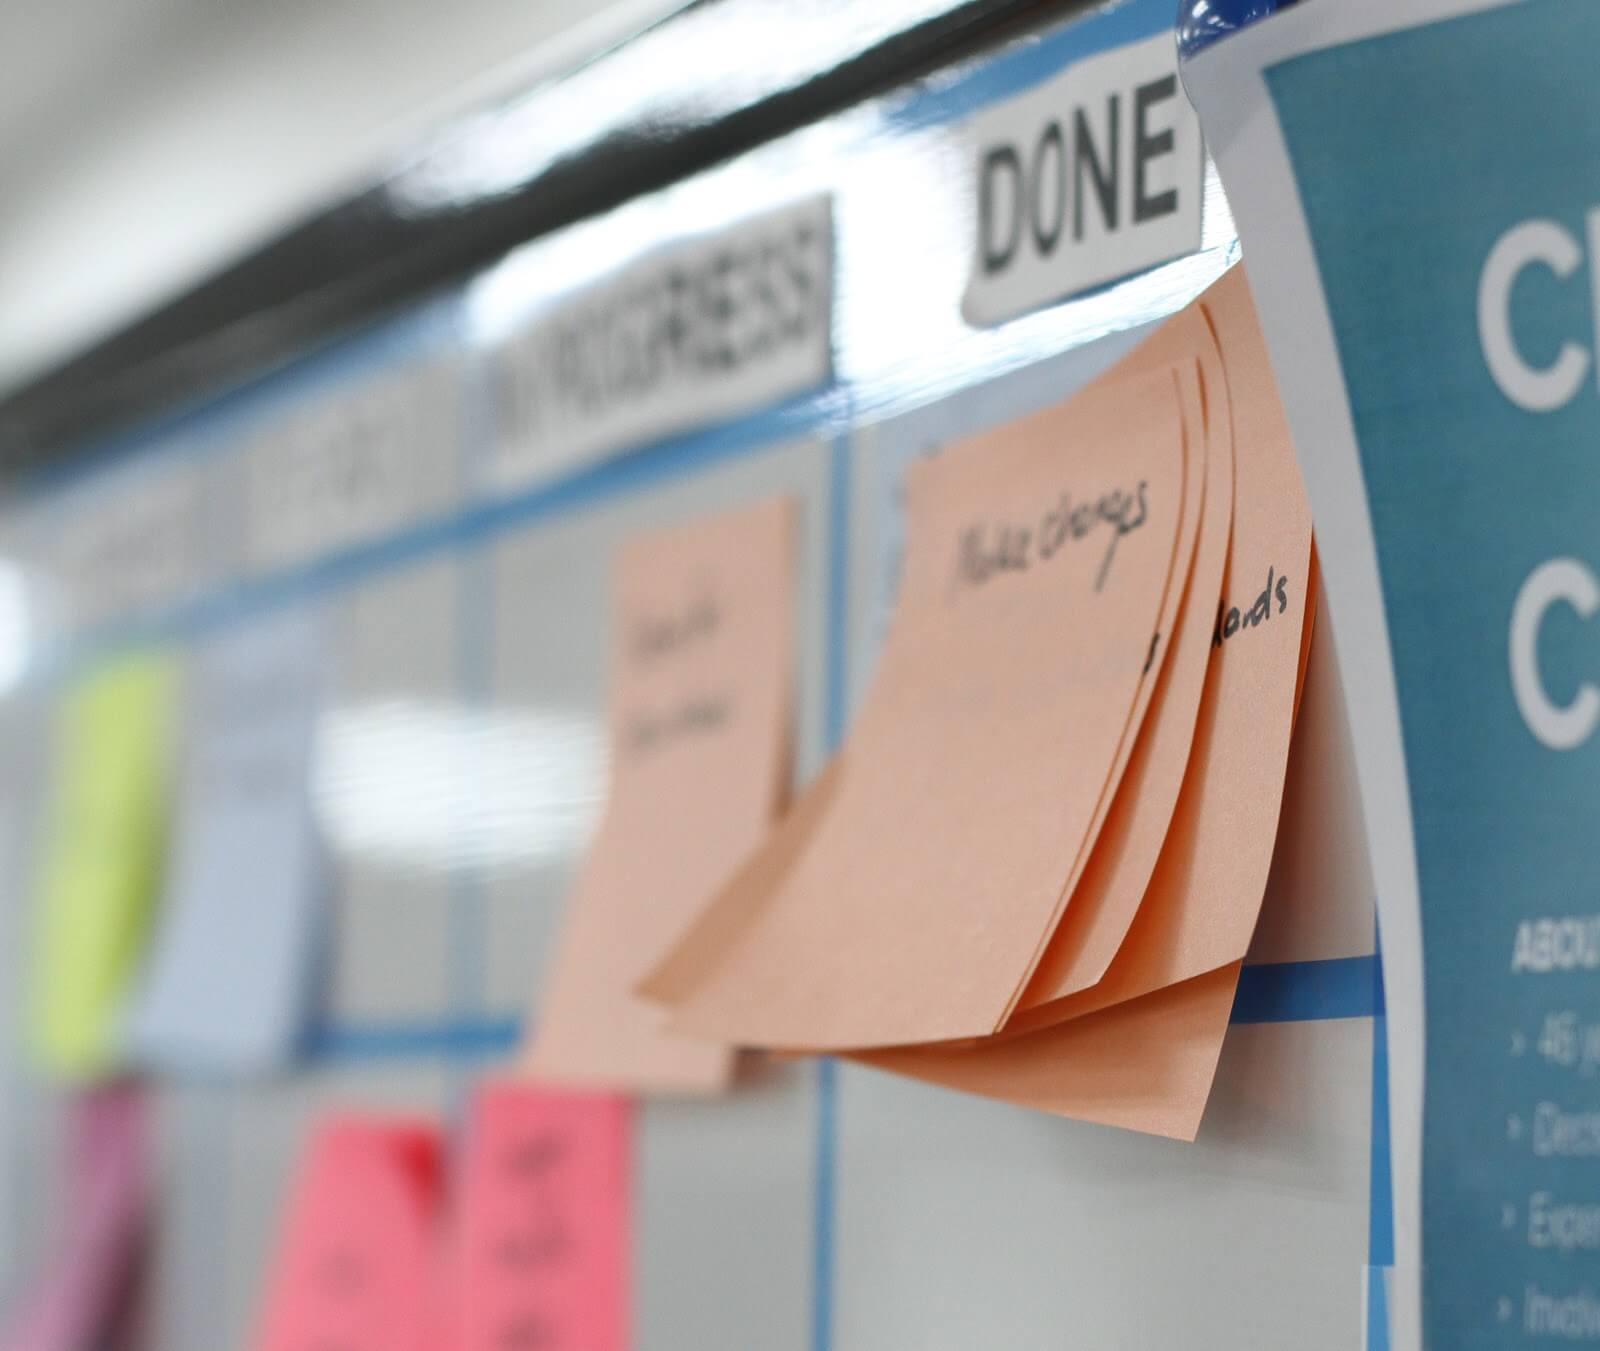 A close-up of the Done column of a Scrum board showing the post-it notes for the completed stories.